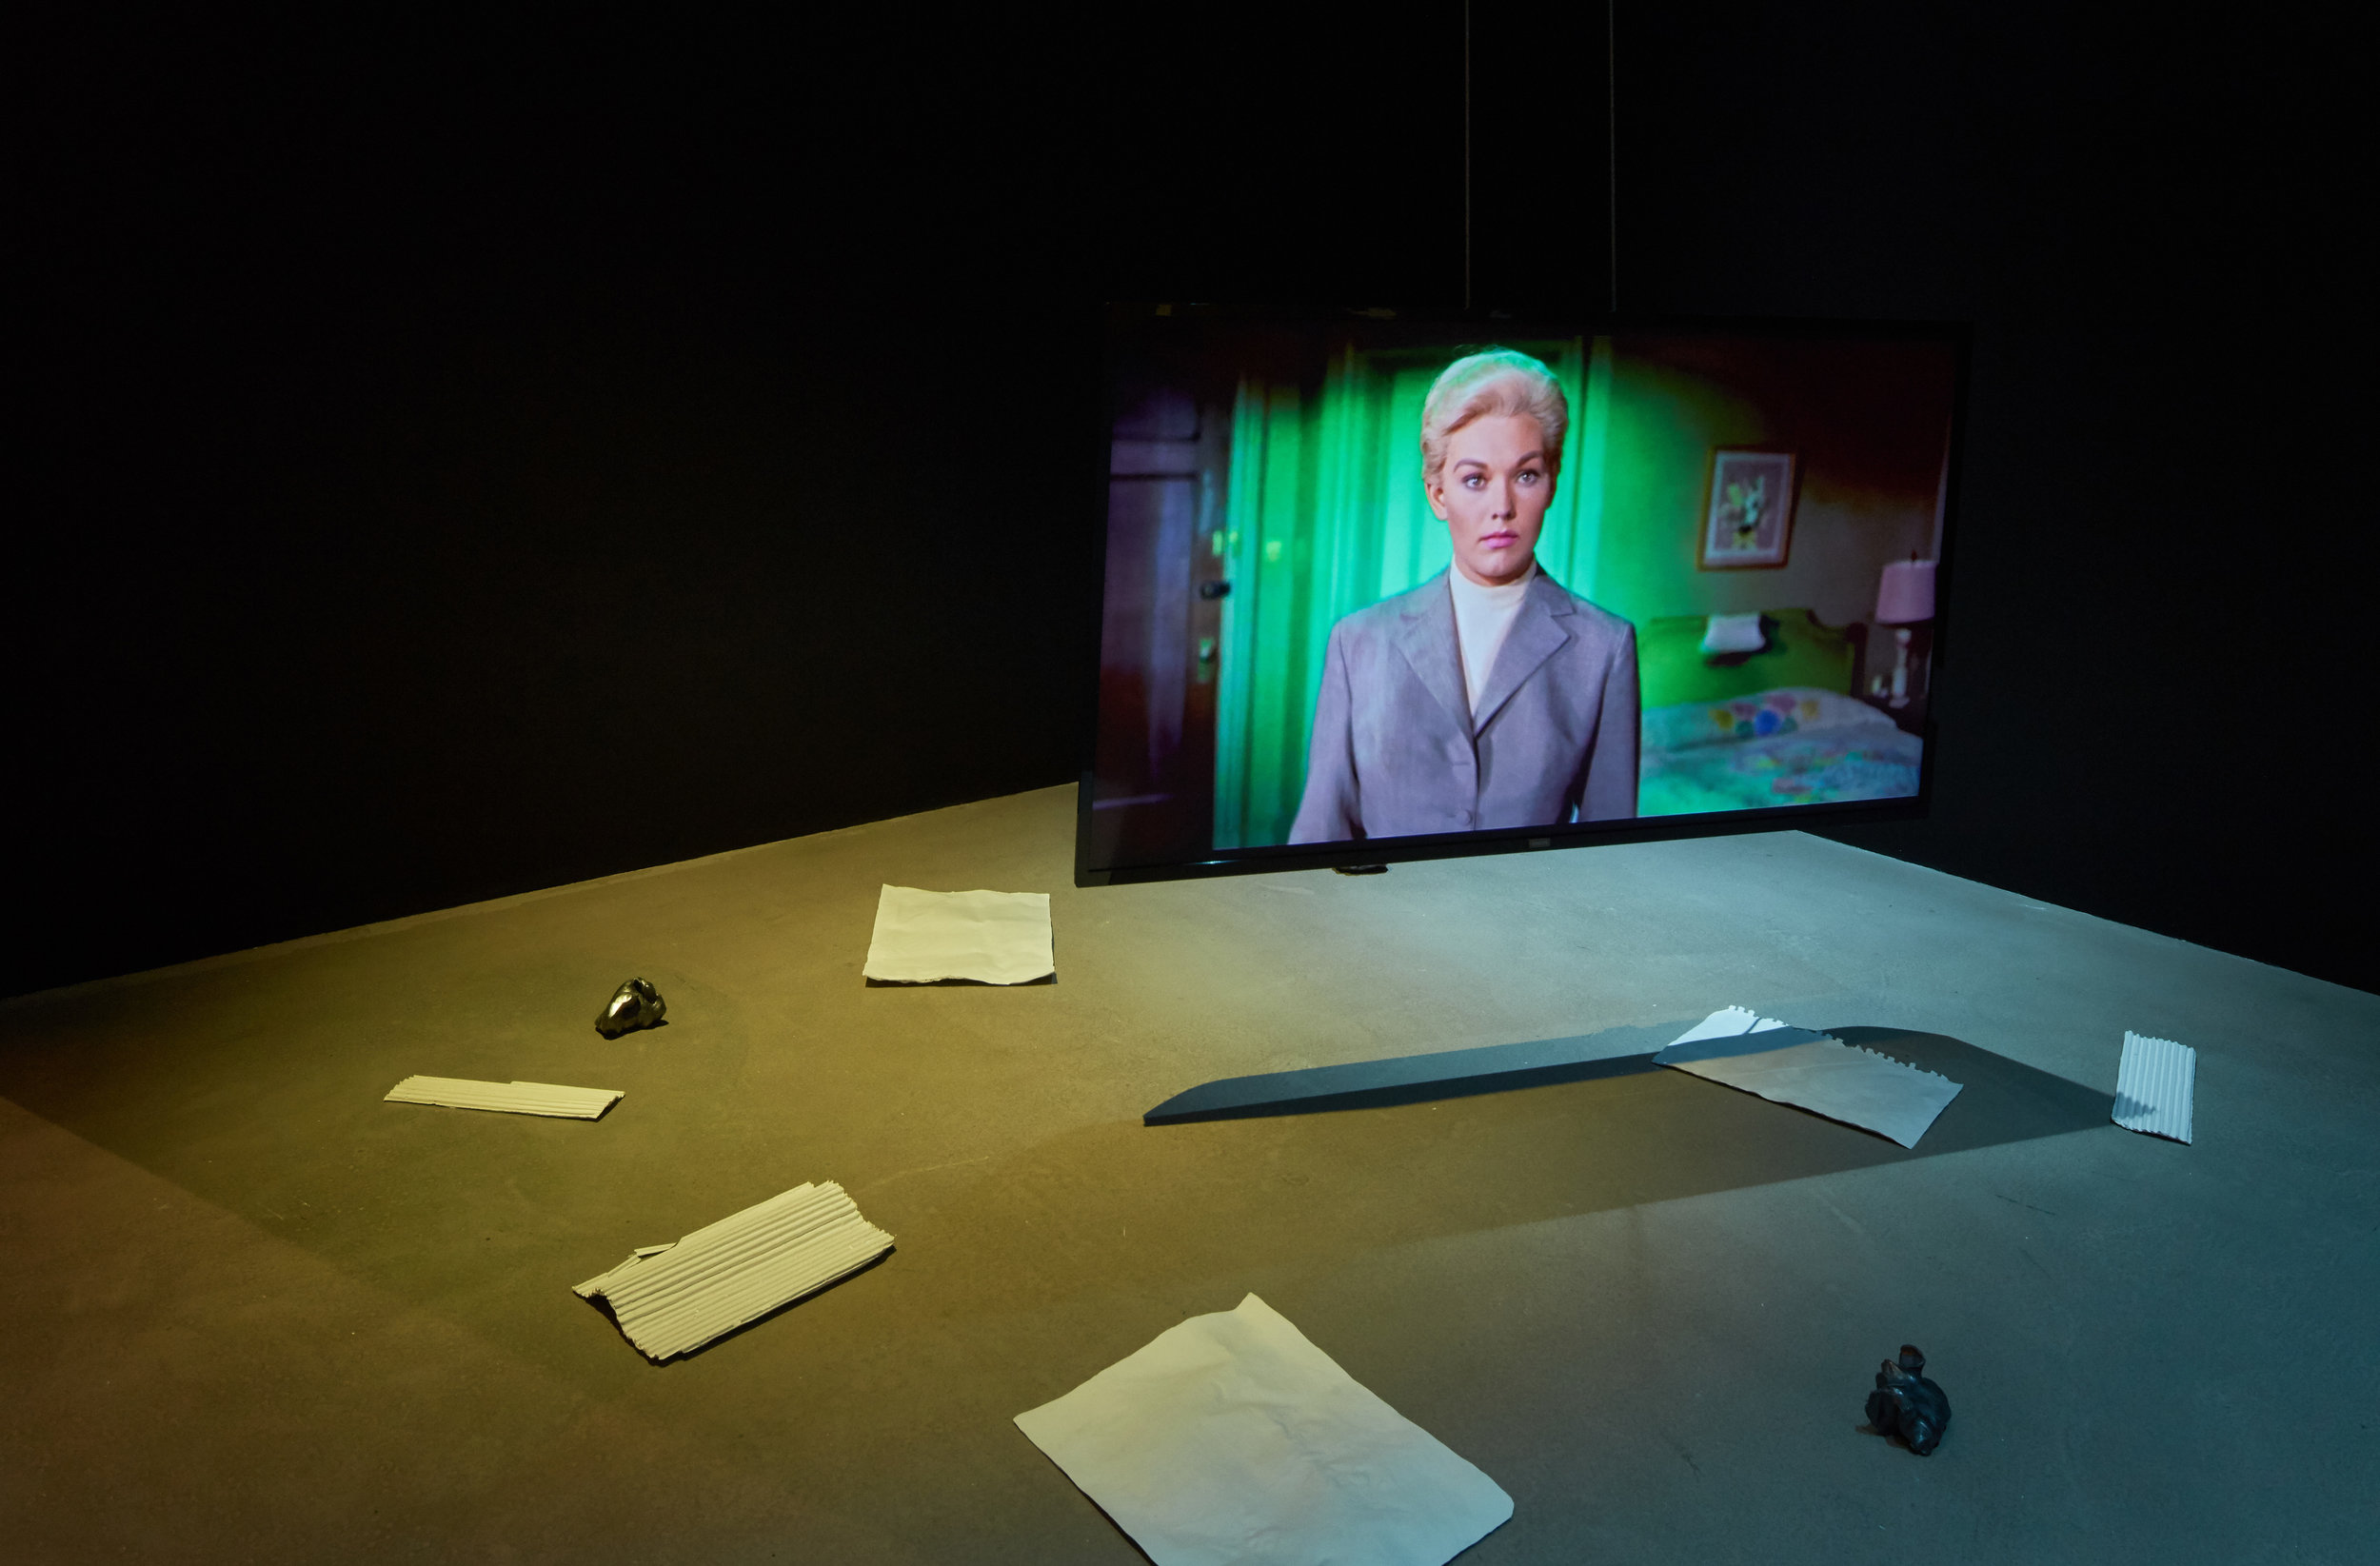 Elísabet Brynhildardóttir   Þeir stilla sér ekki upp (They will not pose)  2018. Site specific installation; two channel videos, plaster sculptures and graphite covered clay.